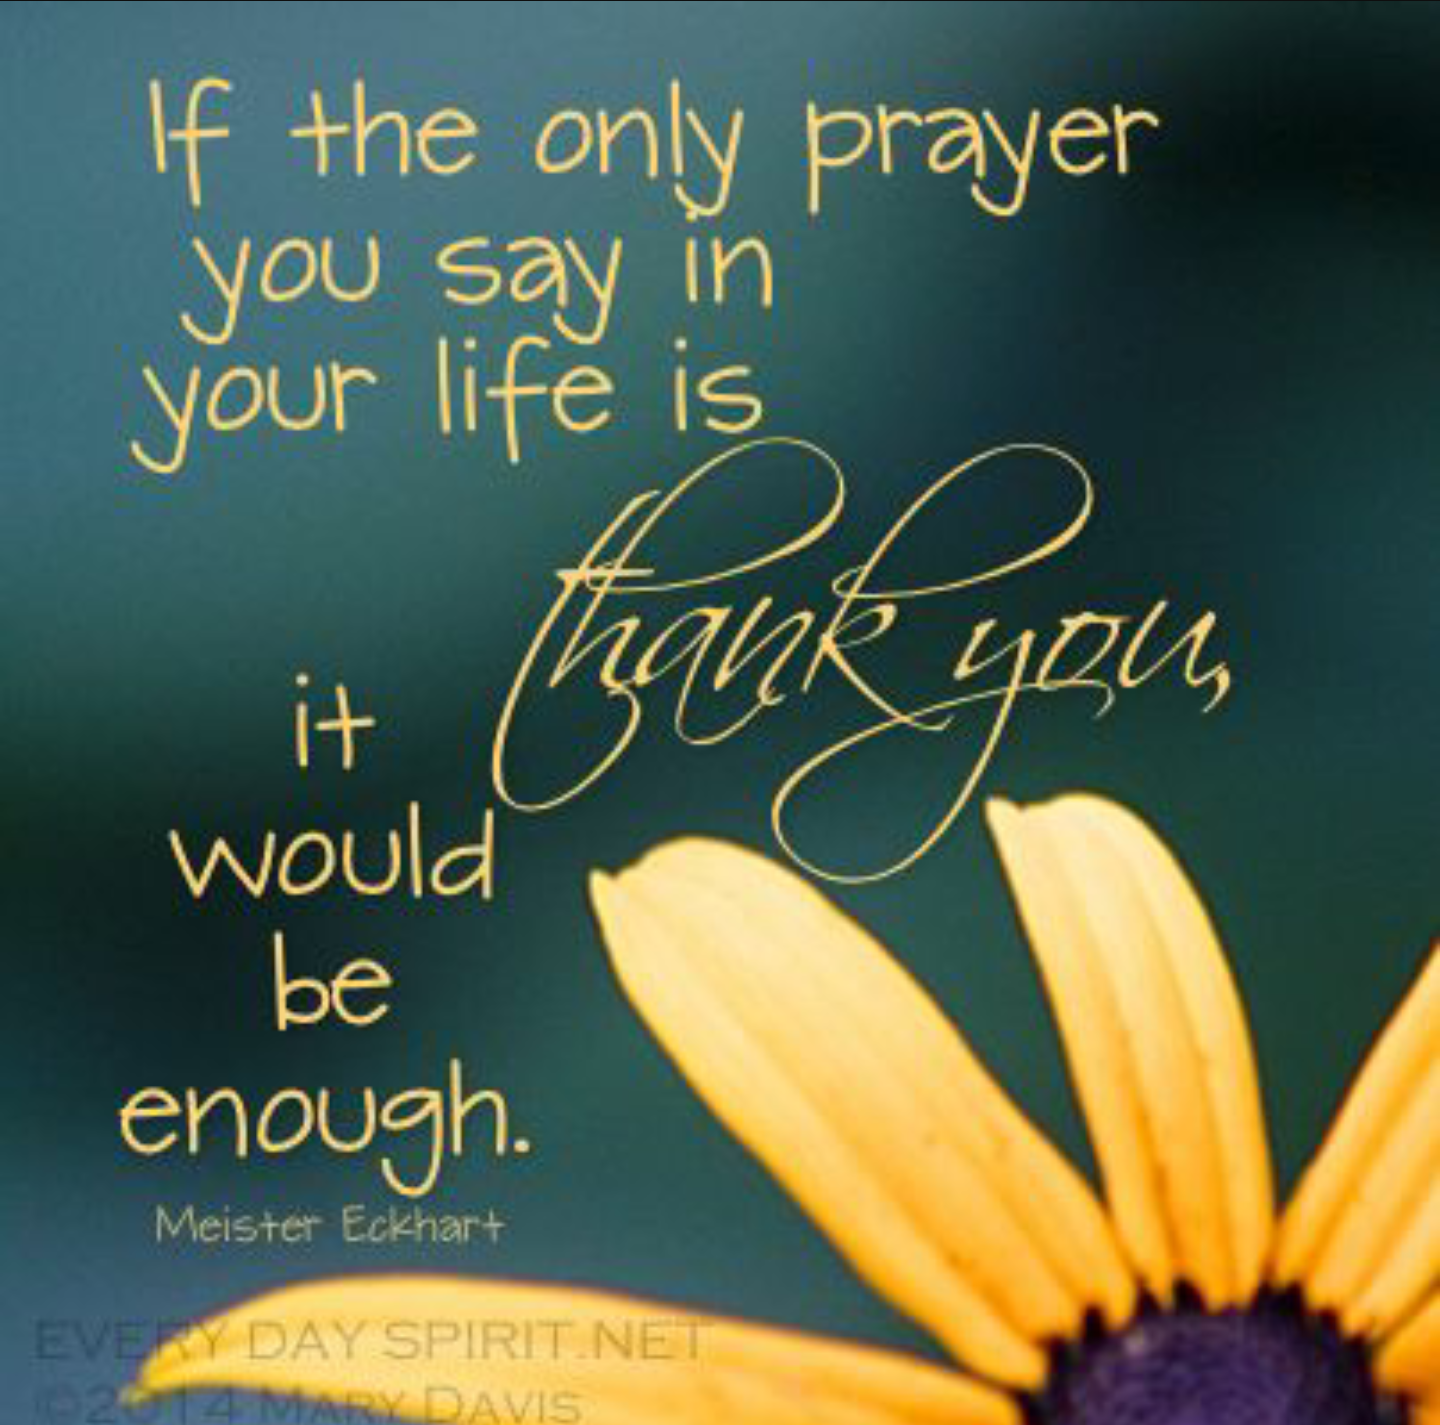 The One Prayer You Need Secret 2 An Amazing Life